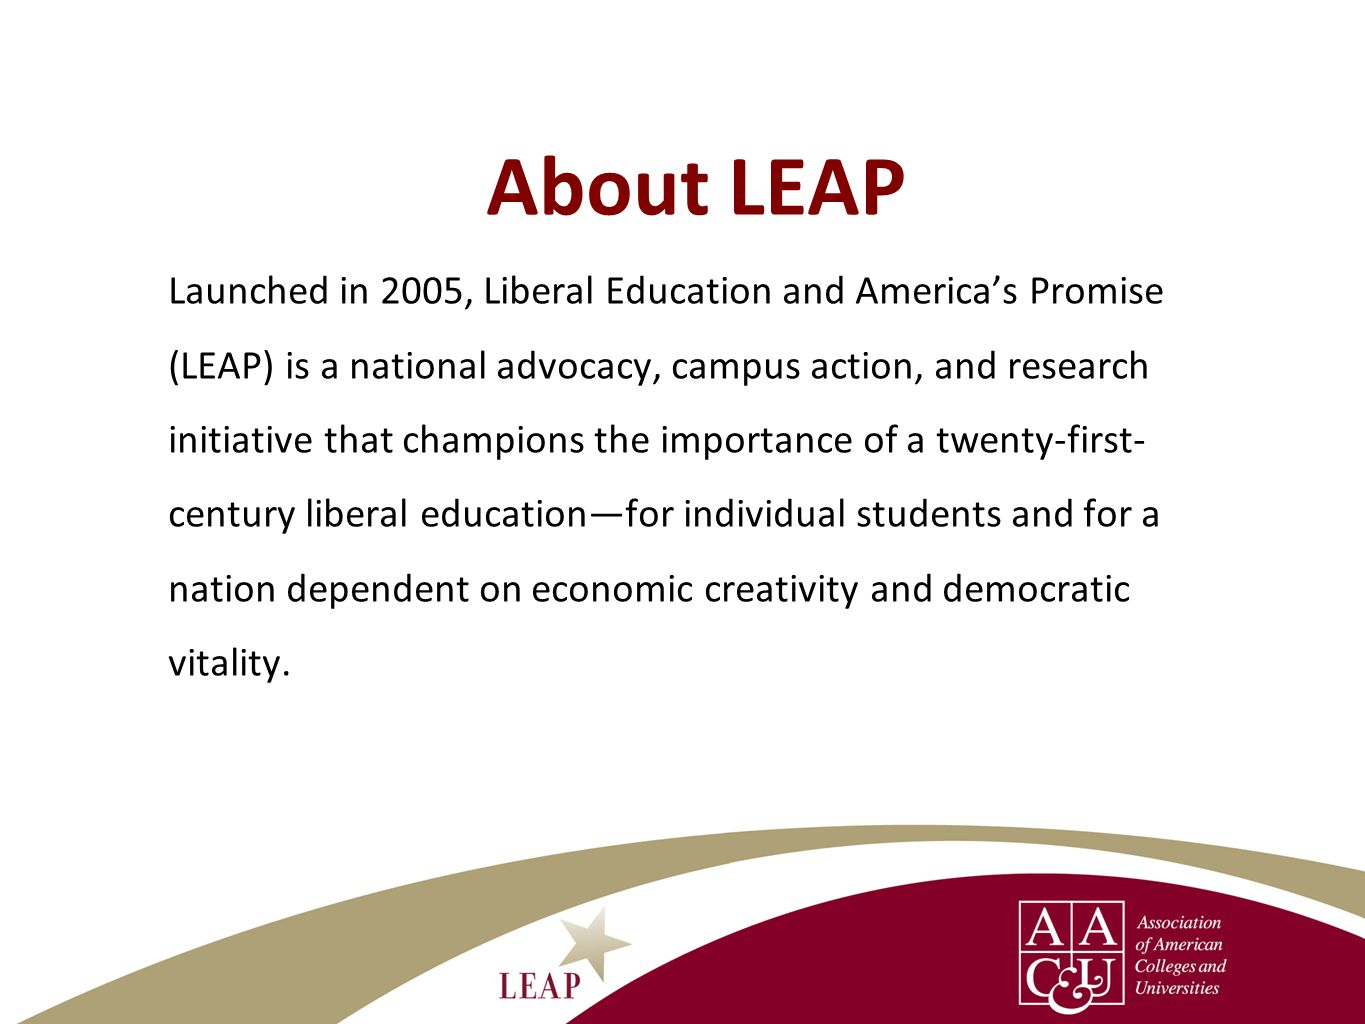 About LEAP Launched in 2005, Liberal Education and Americas Promise (LEAP) is a national advocacy, campus action, and research initiative that champions the importance of a twenty-first- century liberal educationfor individual students and for a nation dependent on economic creativity and democratic vitality.